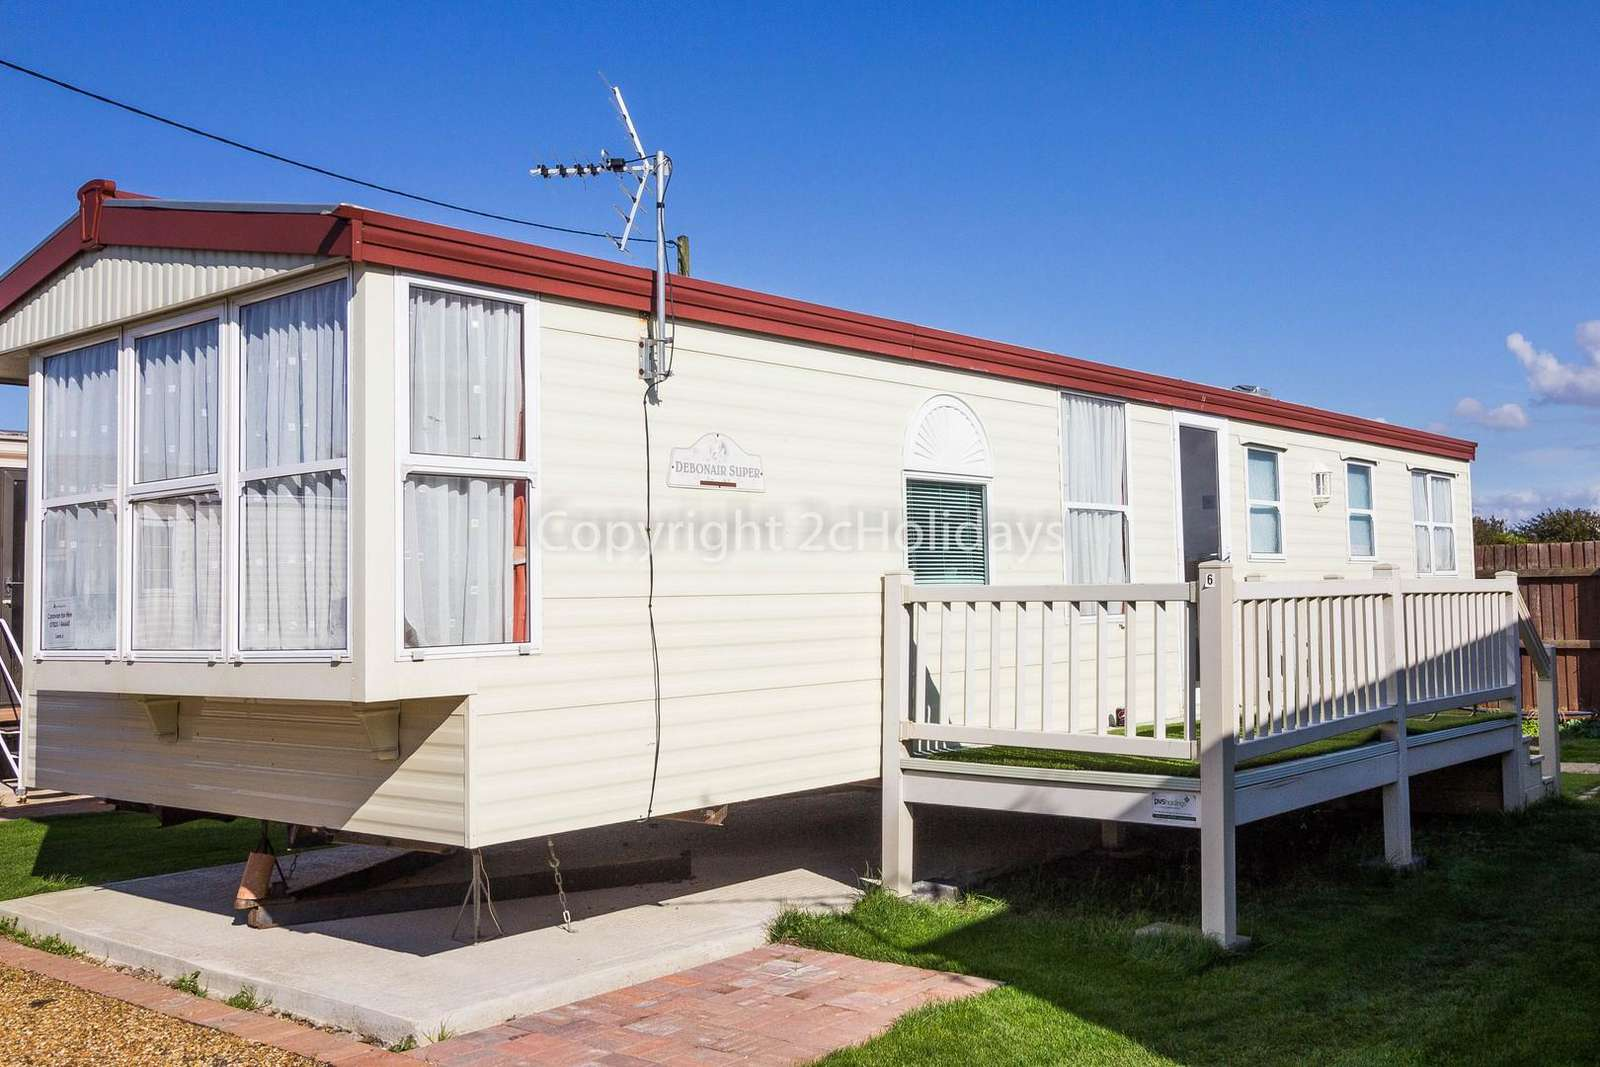 Look at reviews on Lees holiday park and see just how close it is to Hunstanton beach - property